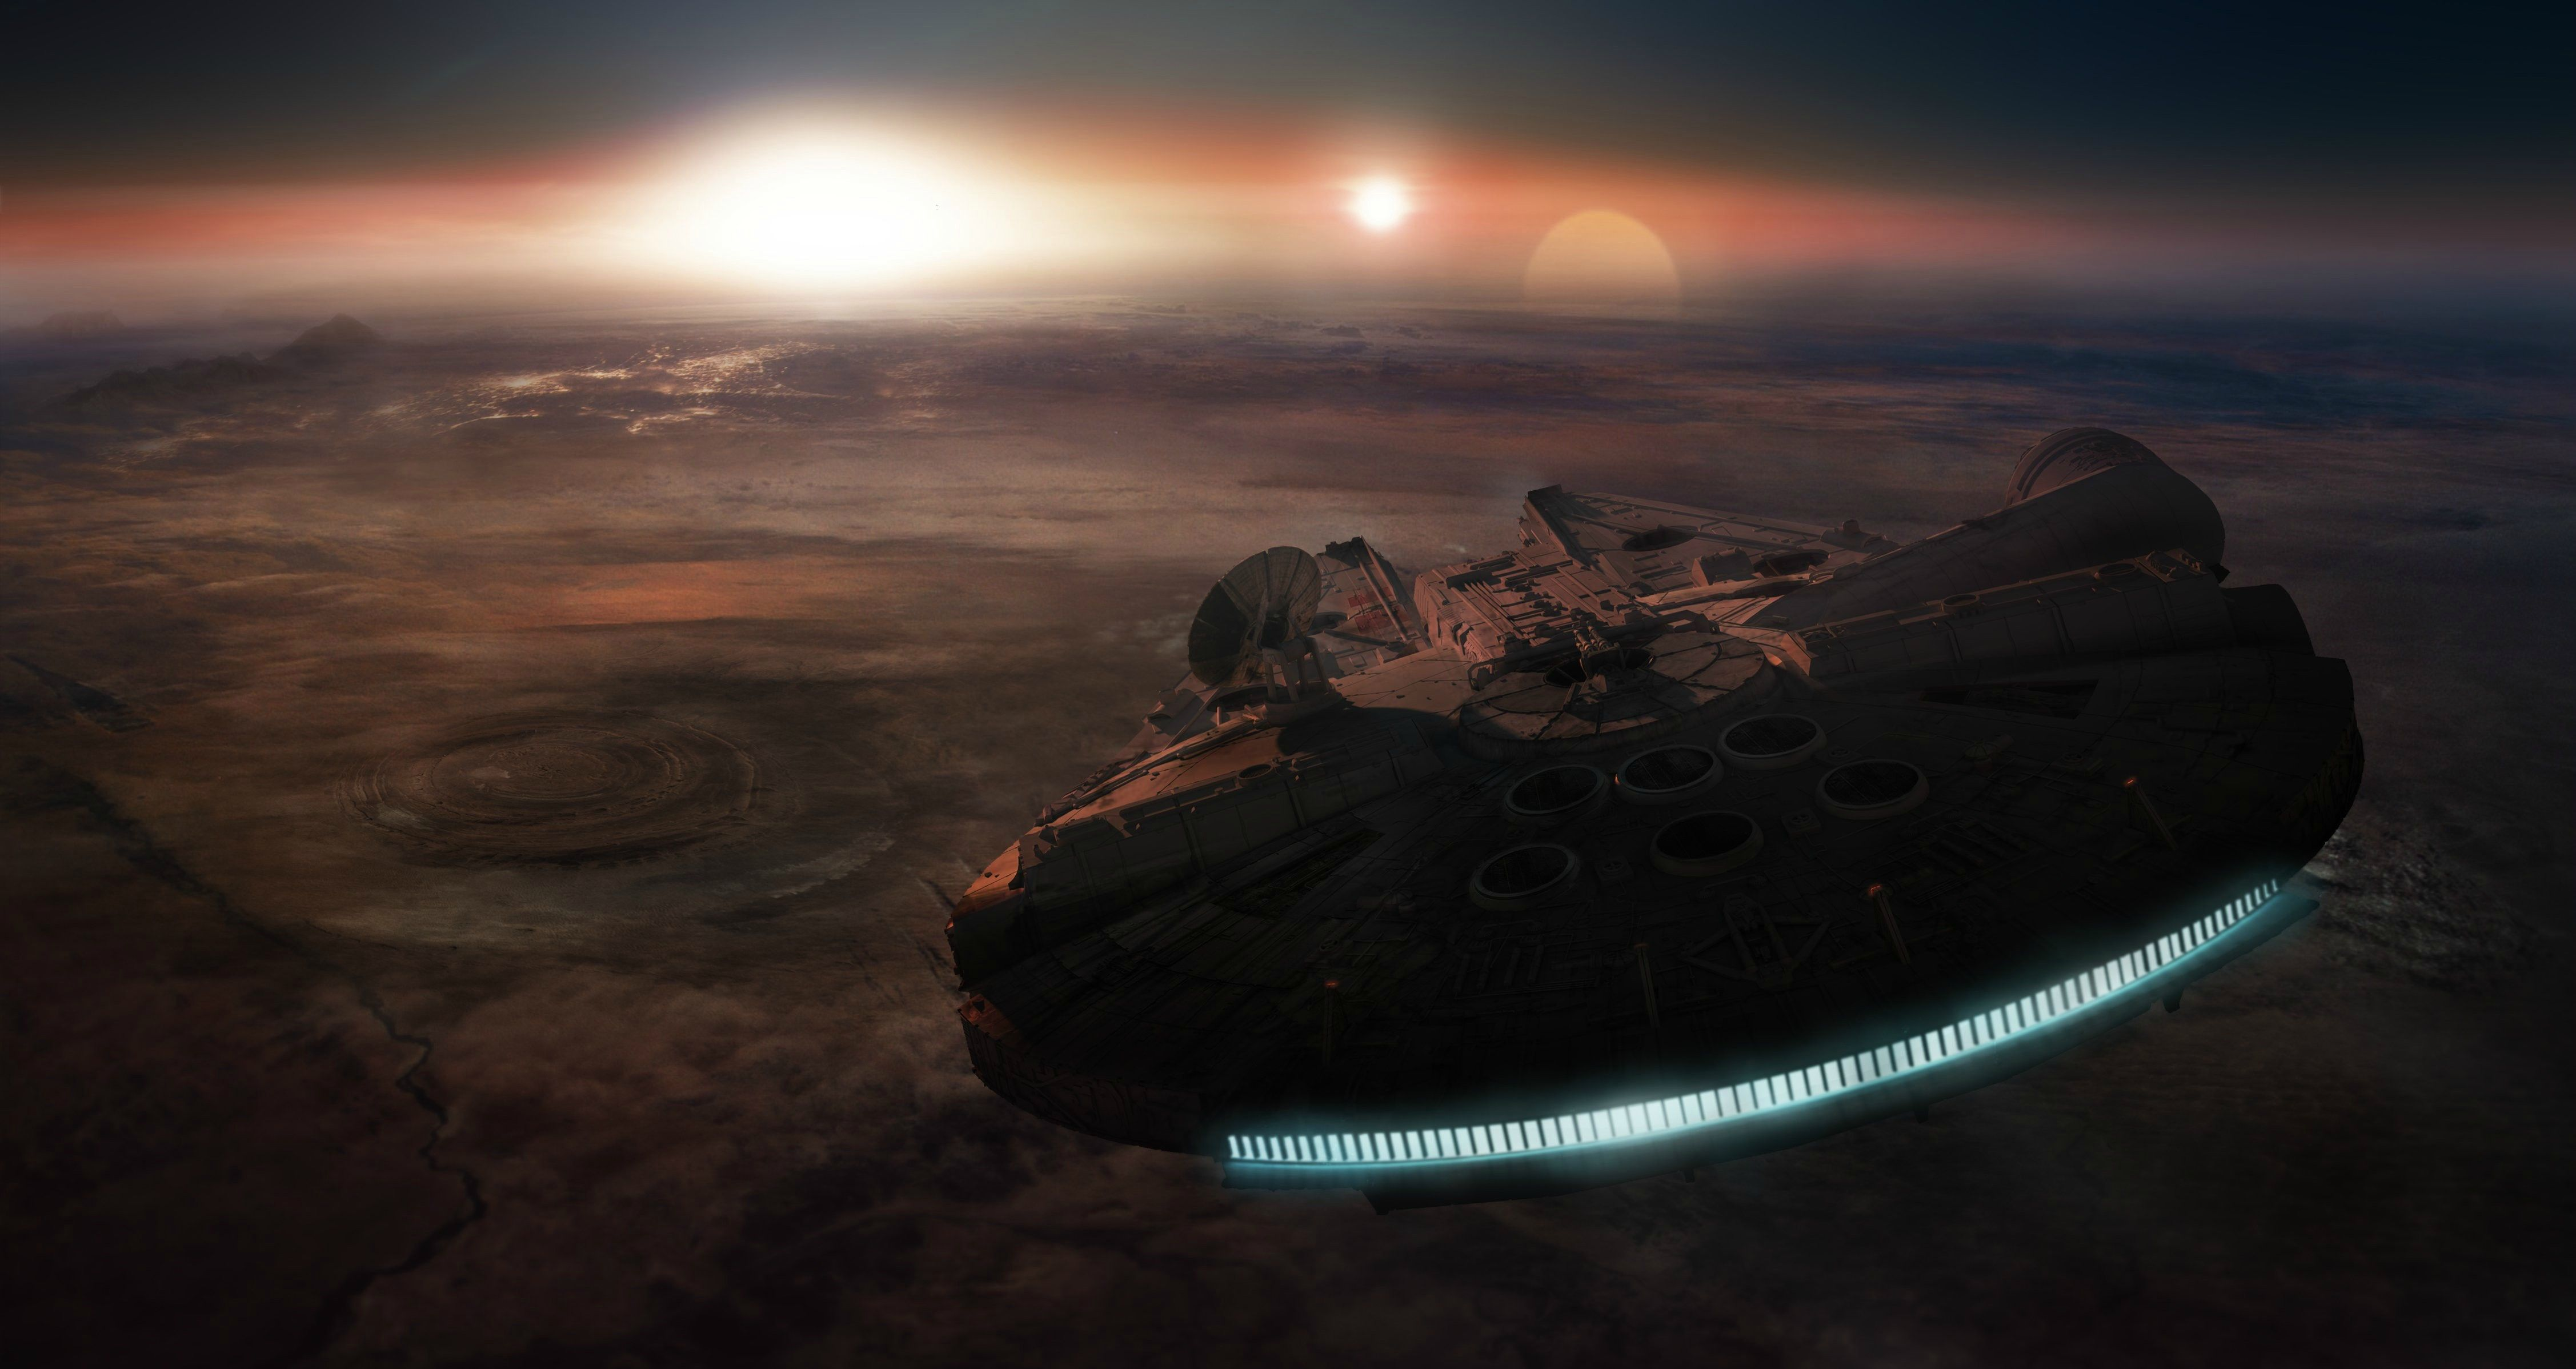 Star Wars High Quality Wallpapers Album On Imgur Star Wars Wallpaper Star Wars Episode Vii Star Wars 7